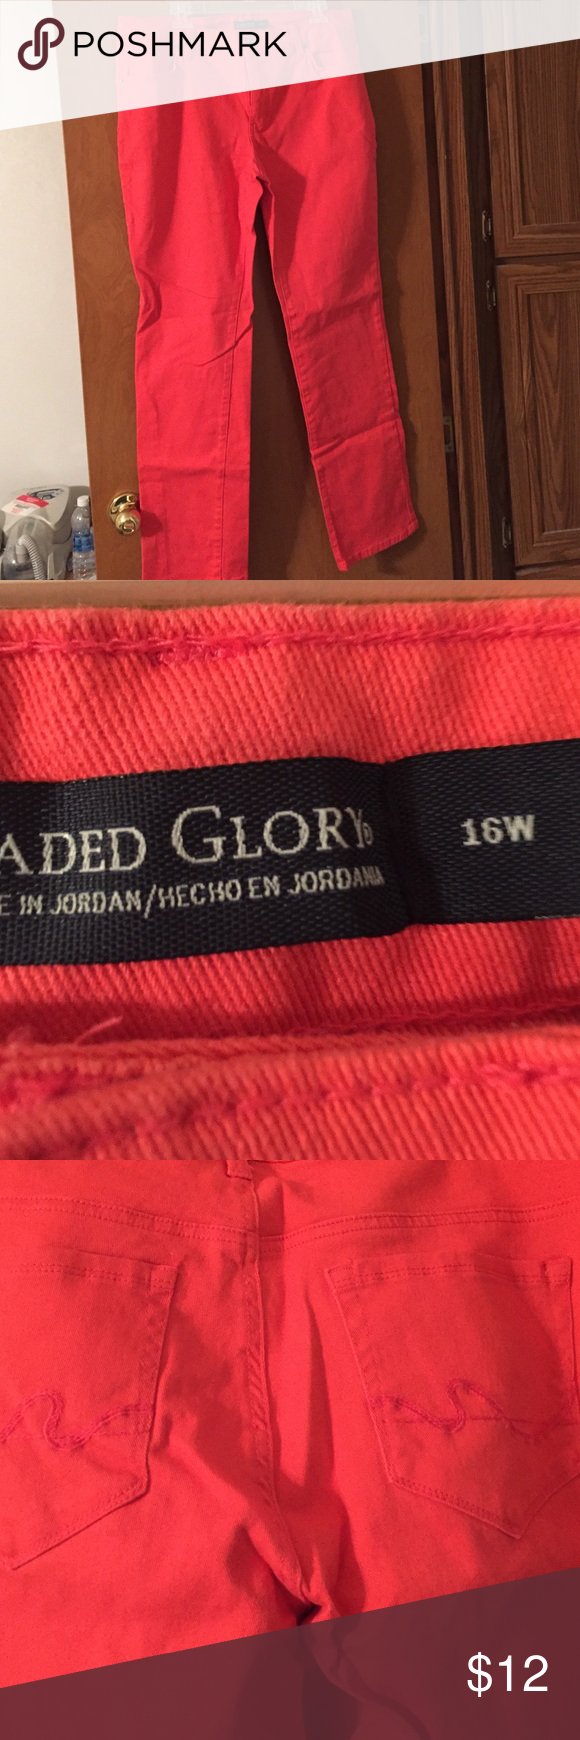 """Faded Glory Pink Jeans 16W Dark pink jeans by Faded Glory in size 16W. Material is 98% Cotton & 2% Spandex. Jeans have pockets in front and back. Inseam is 31"""". Very good condition. Faded Glory Jeans Boot Cut"""